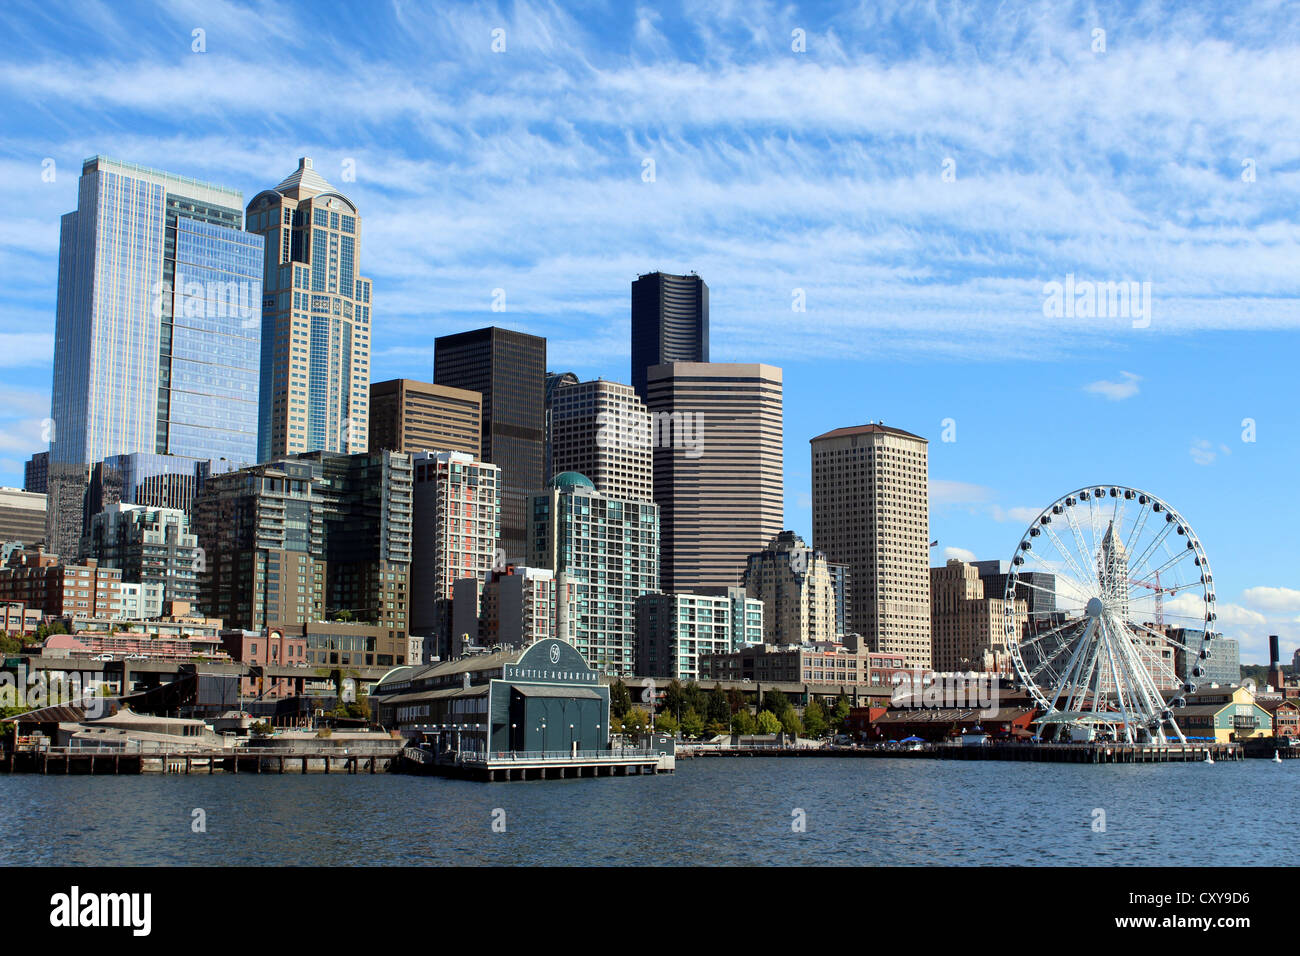 Seattle skyline, Seattle, Washington, USA - Stock Image